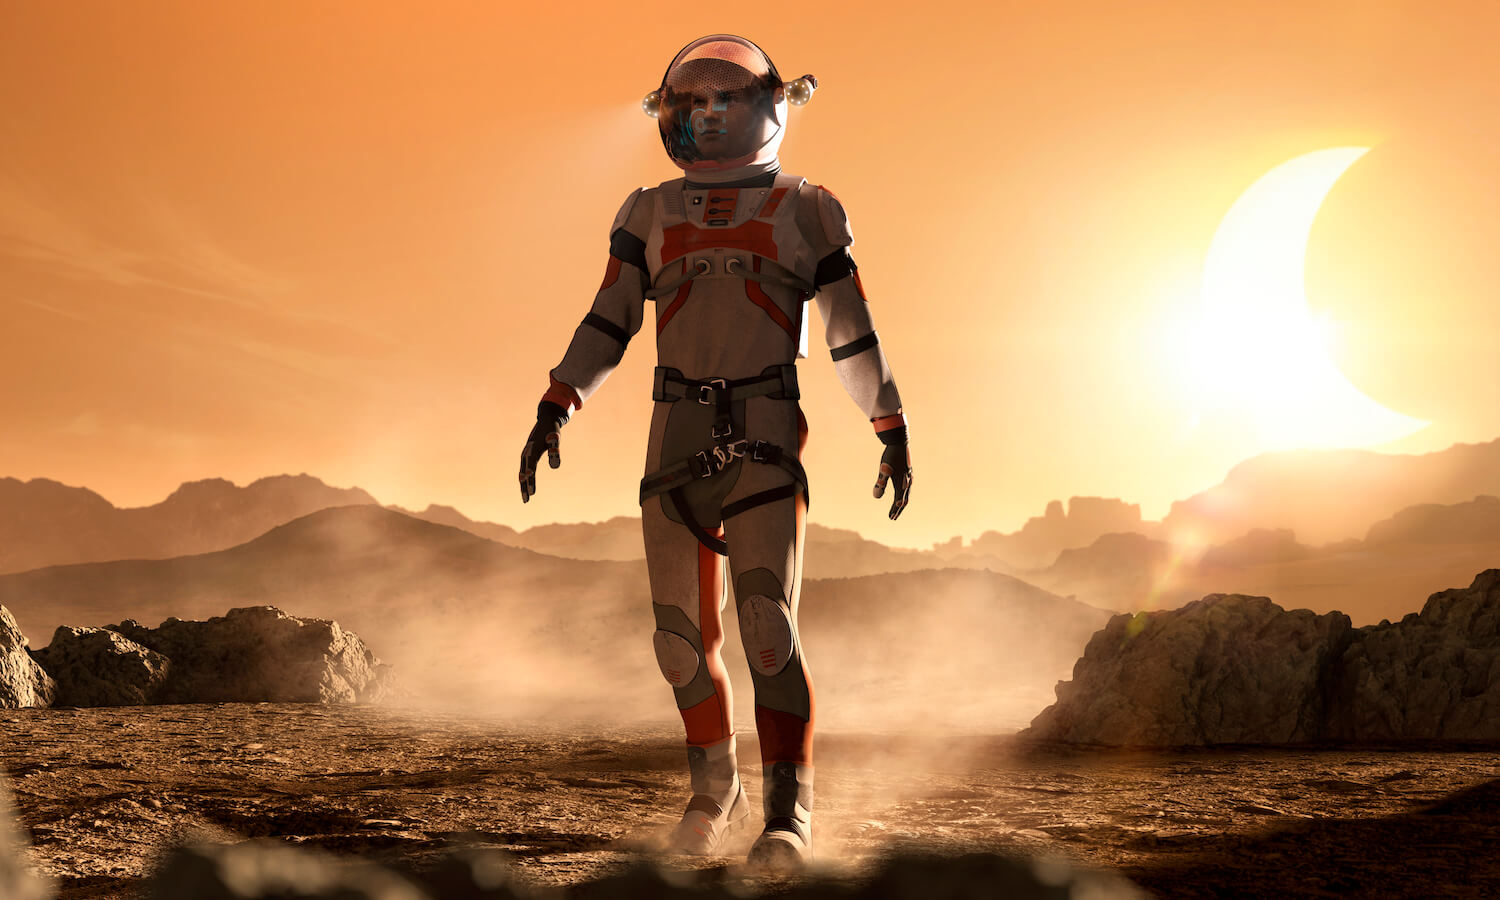 Astronaut walking through rocky martian landscape